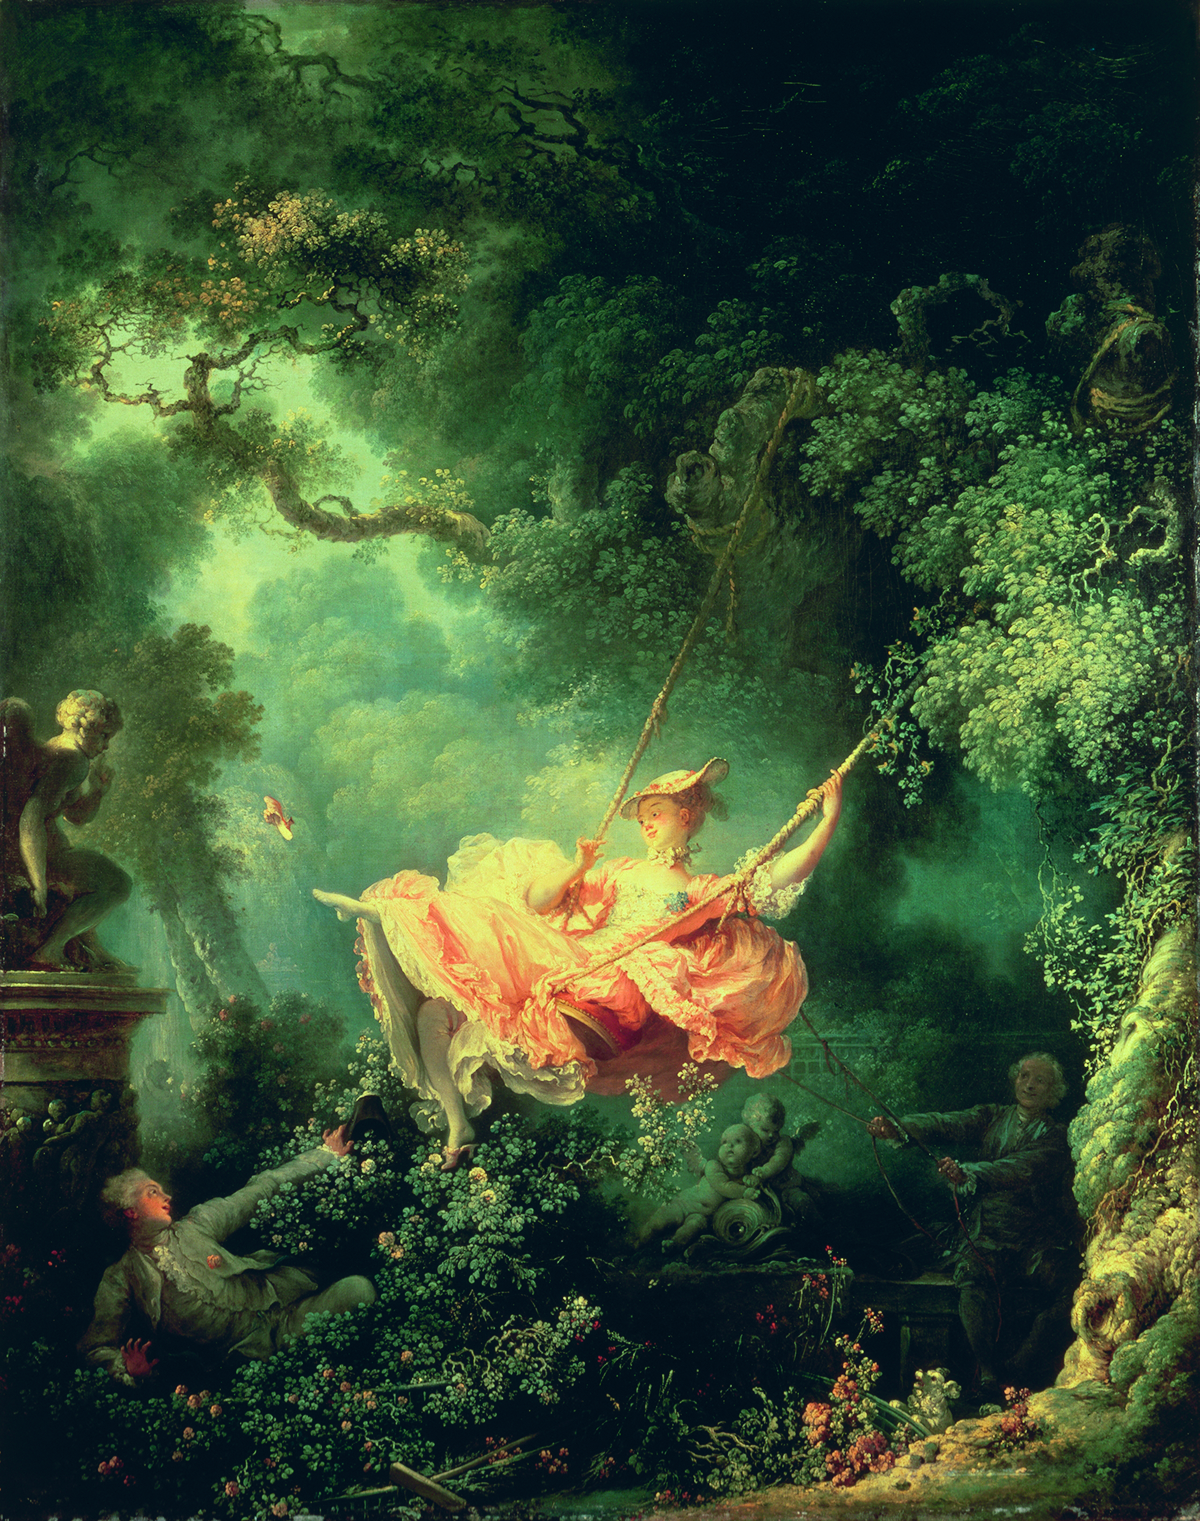 A rococo beauty is being swung to and fro in a tastefully coiffed, as it were, charmingly frilly park, while her admirer occupies himself with gazing at her.